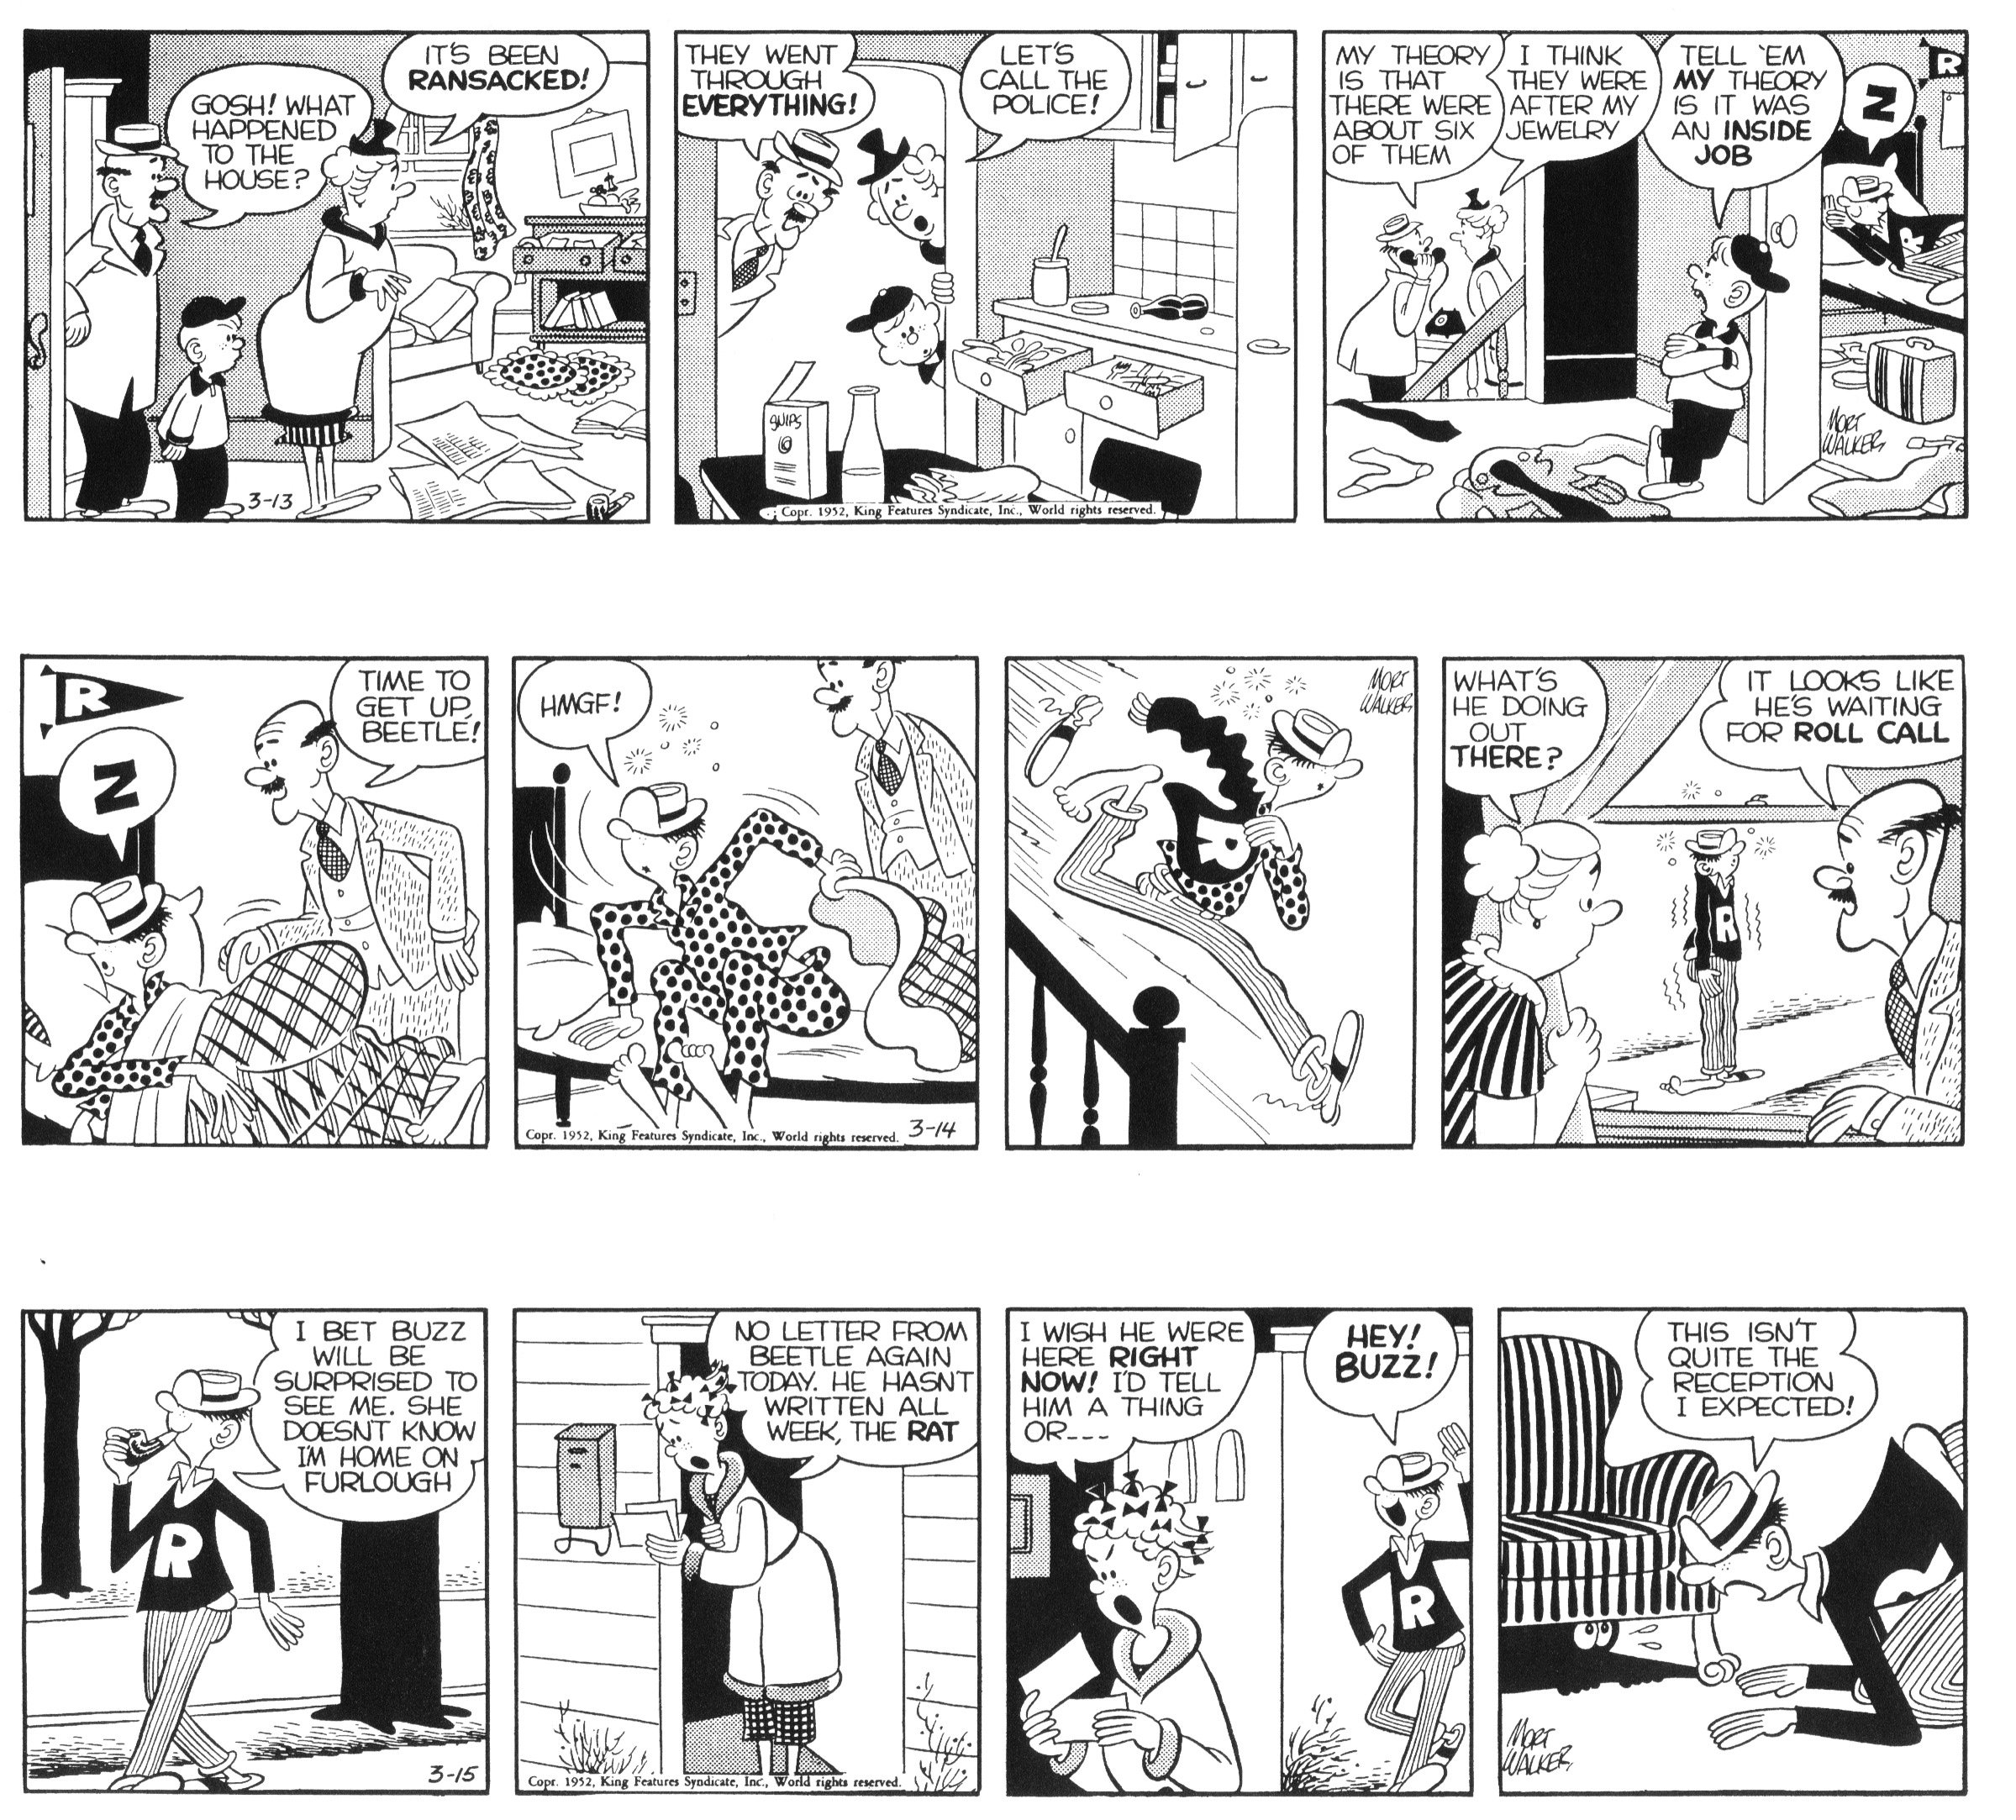 Beetle Bailey daily strips, March 13 - 15, 1952.